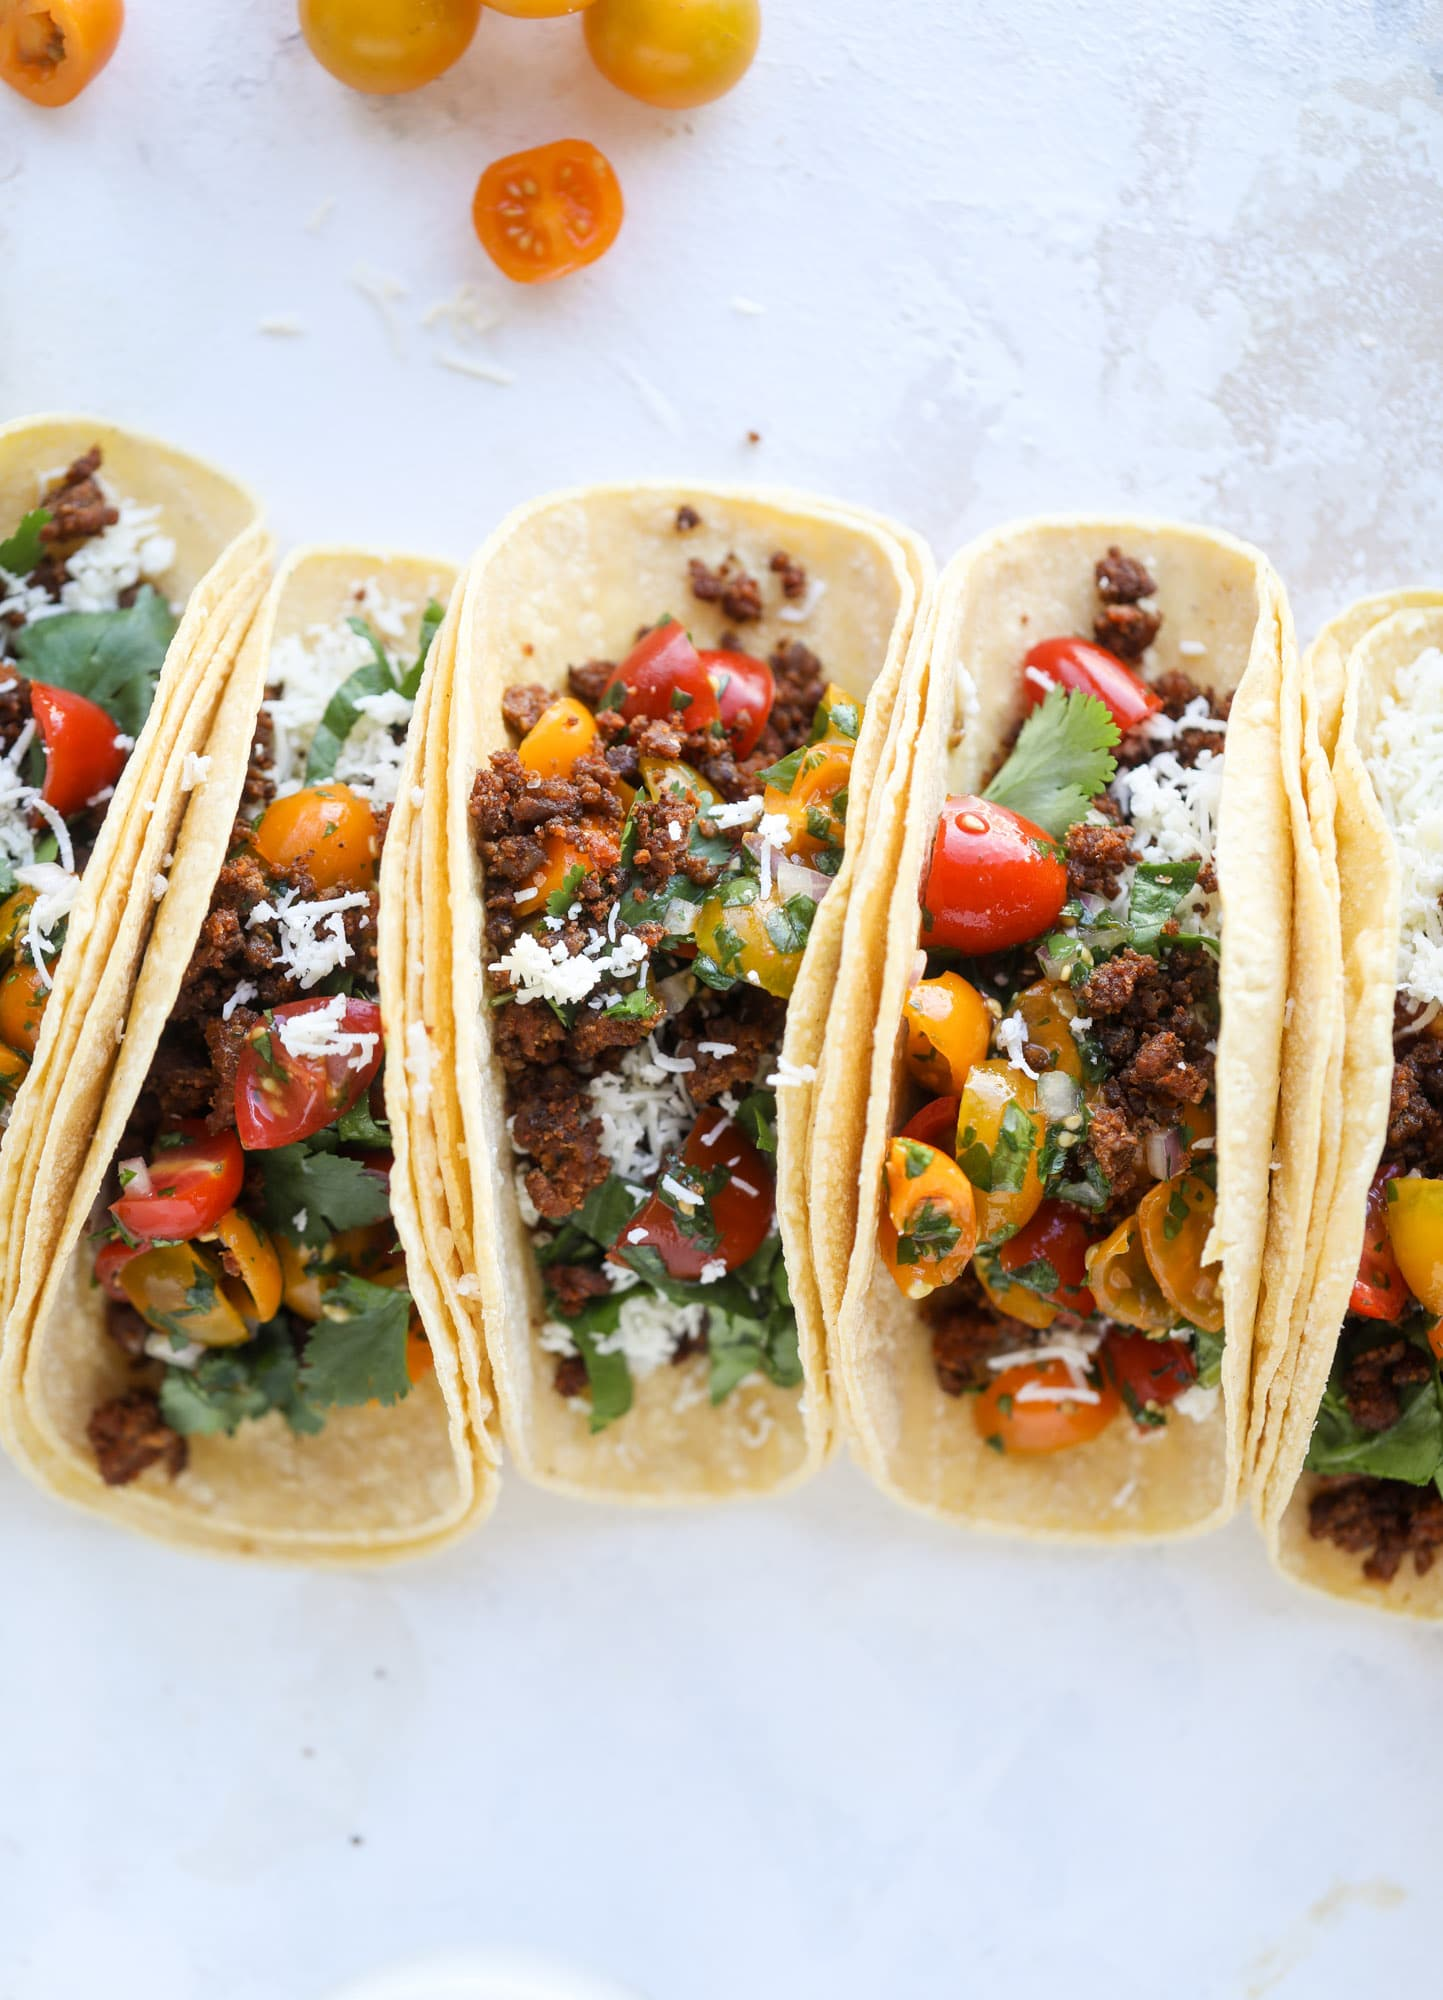 Weeknight ground beef tacos that are anything like the 90s! These are made with a homemade taco seasoning and served with the perfect toppings! I howsweeteats.com #groundbeef #tacos